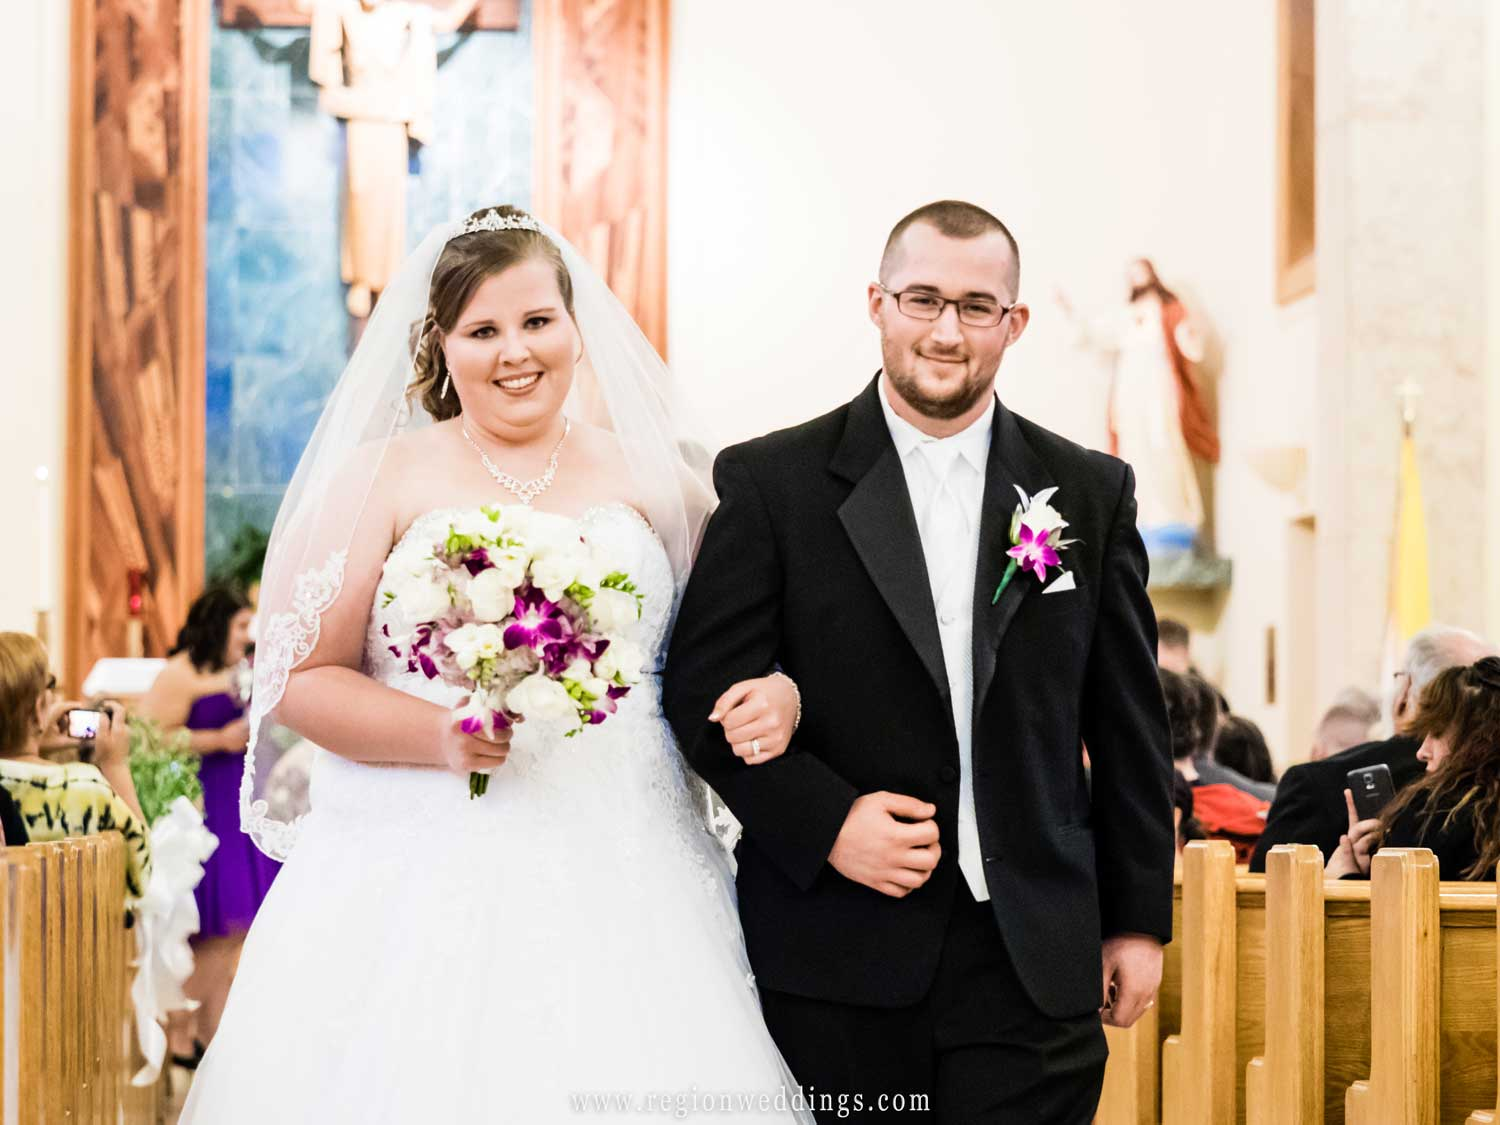 The newly married couple exits St. Mary's Church.